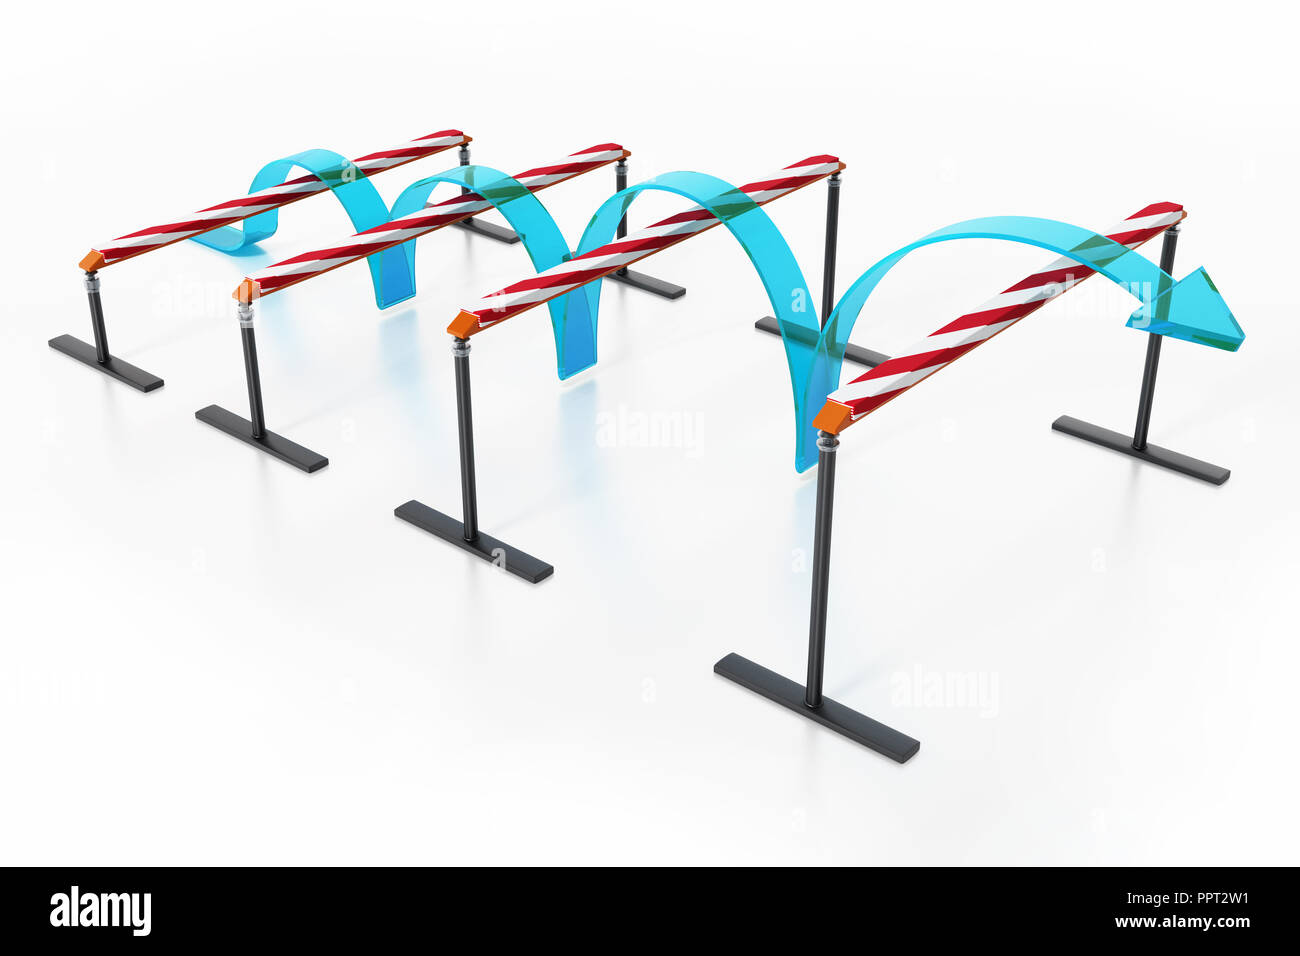 Blue arrow jumping over the obstacles. 3D illustration. - Stock Image